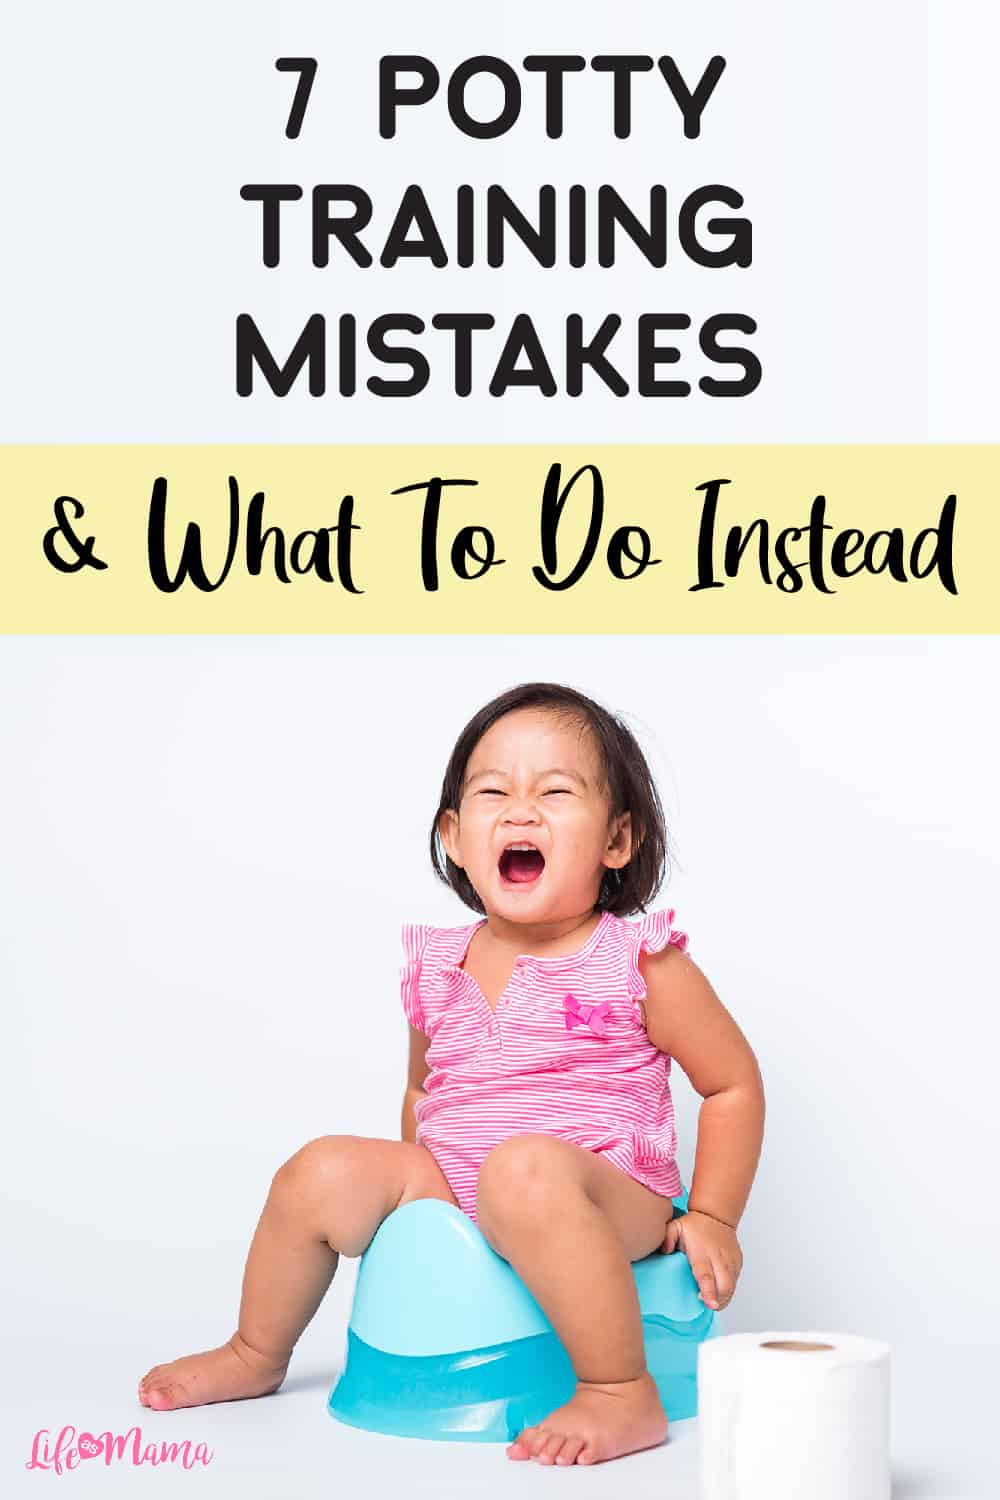 7 Potty Training Mistakes You Need To Avoid-02-01